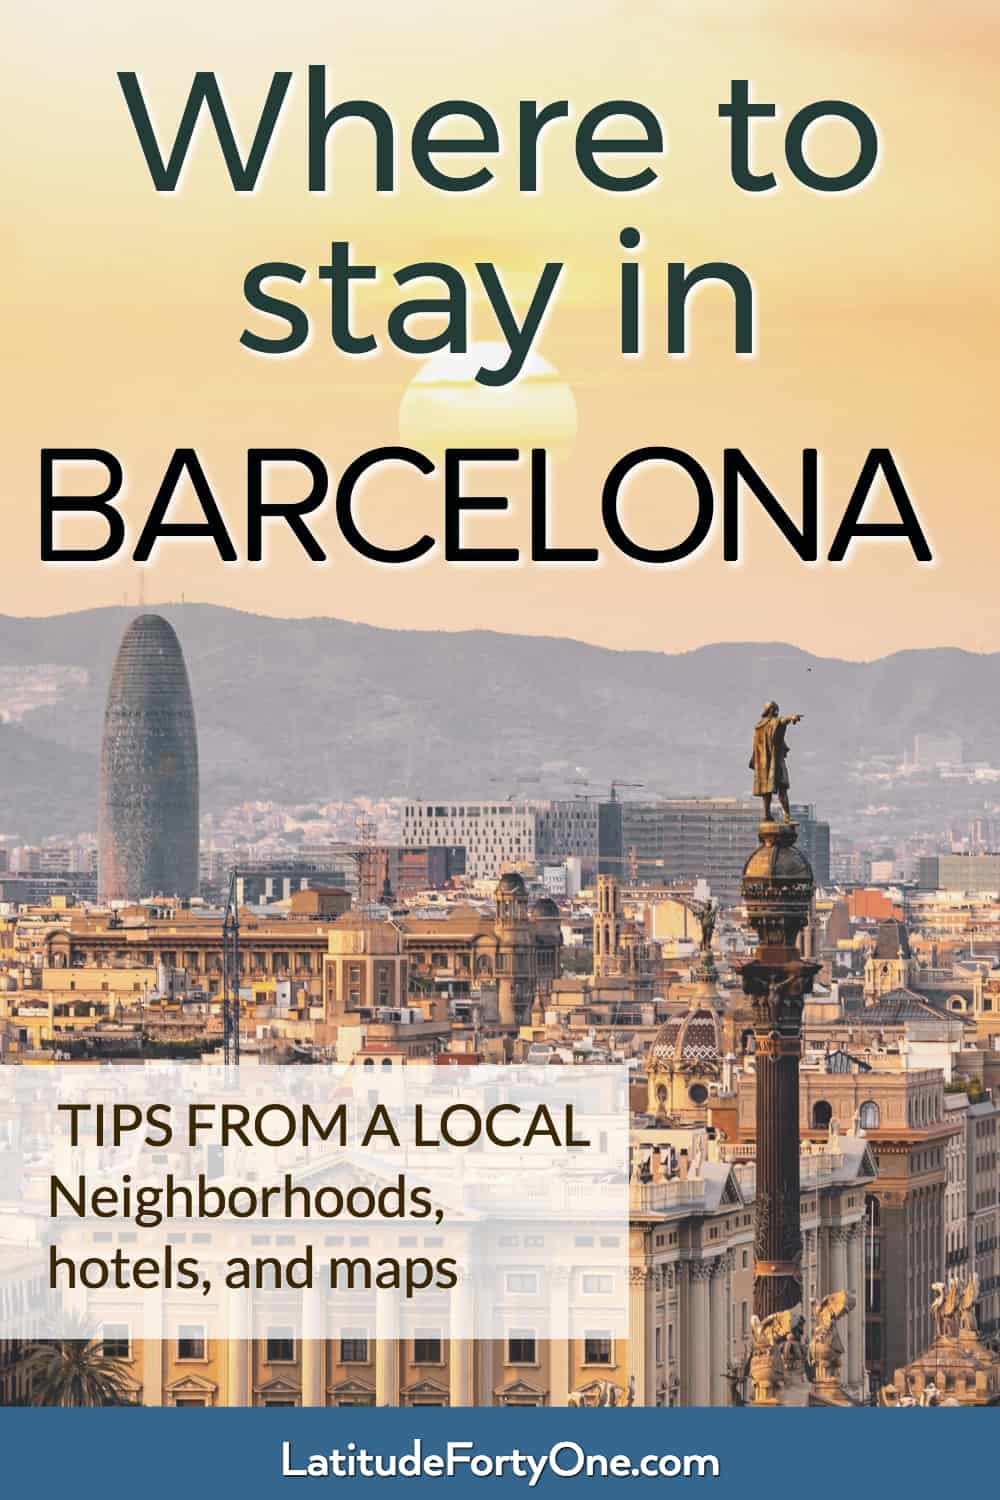 Best areas to stay in Barcelona, according to a local. Neighborhood guide, hostels and hotels, and a map!